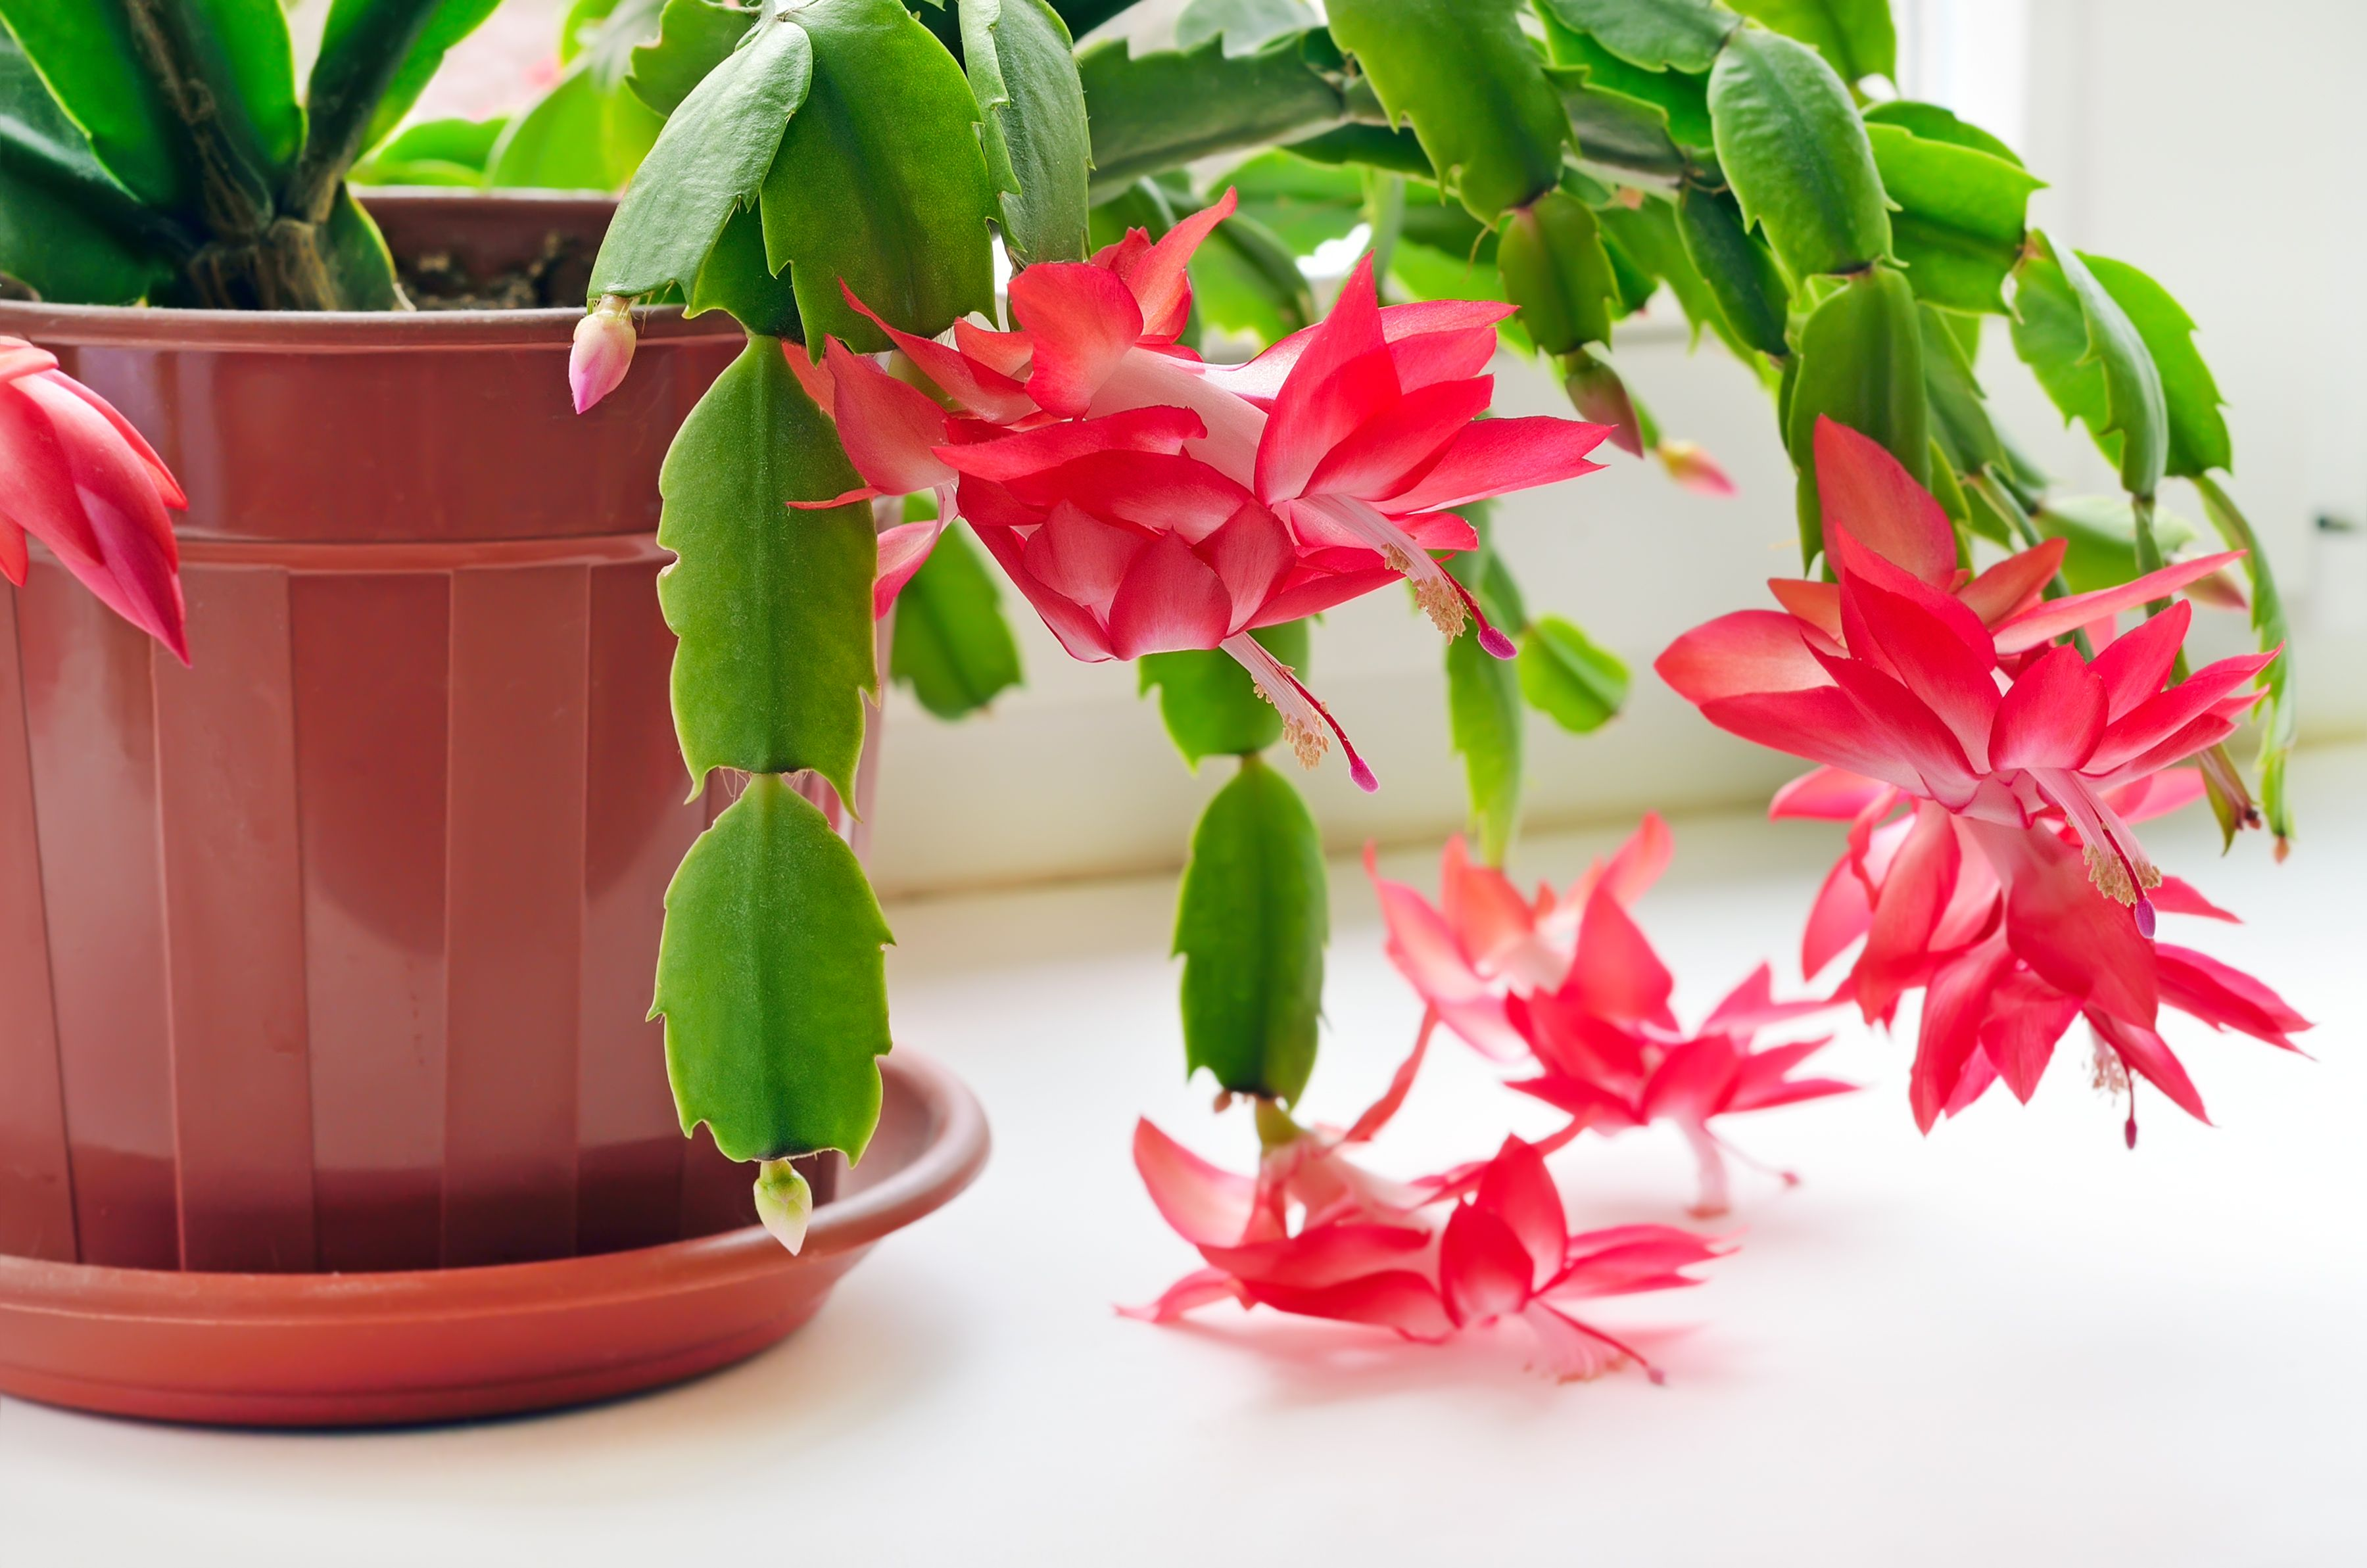 What is a Christmas cactus and how do you care for it?